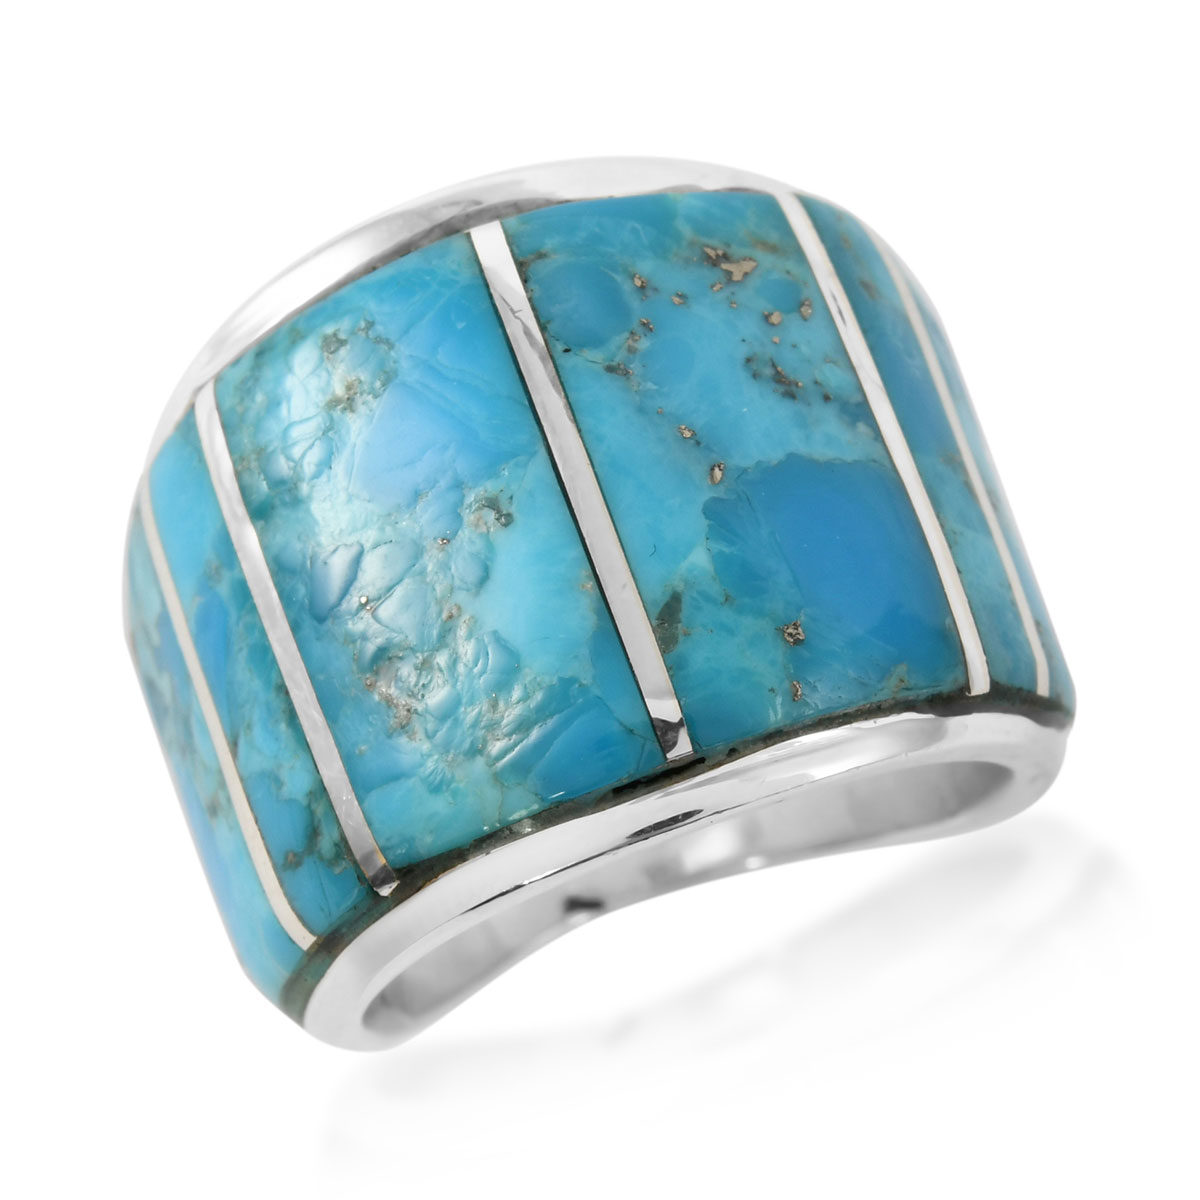 Santa Fe Style Kingman Turquoise Ring In Sterling Silver Size 7 0